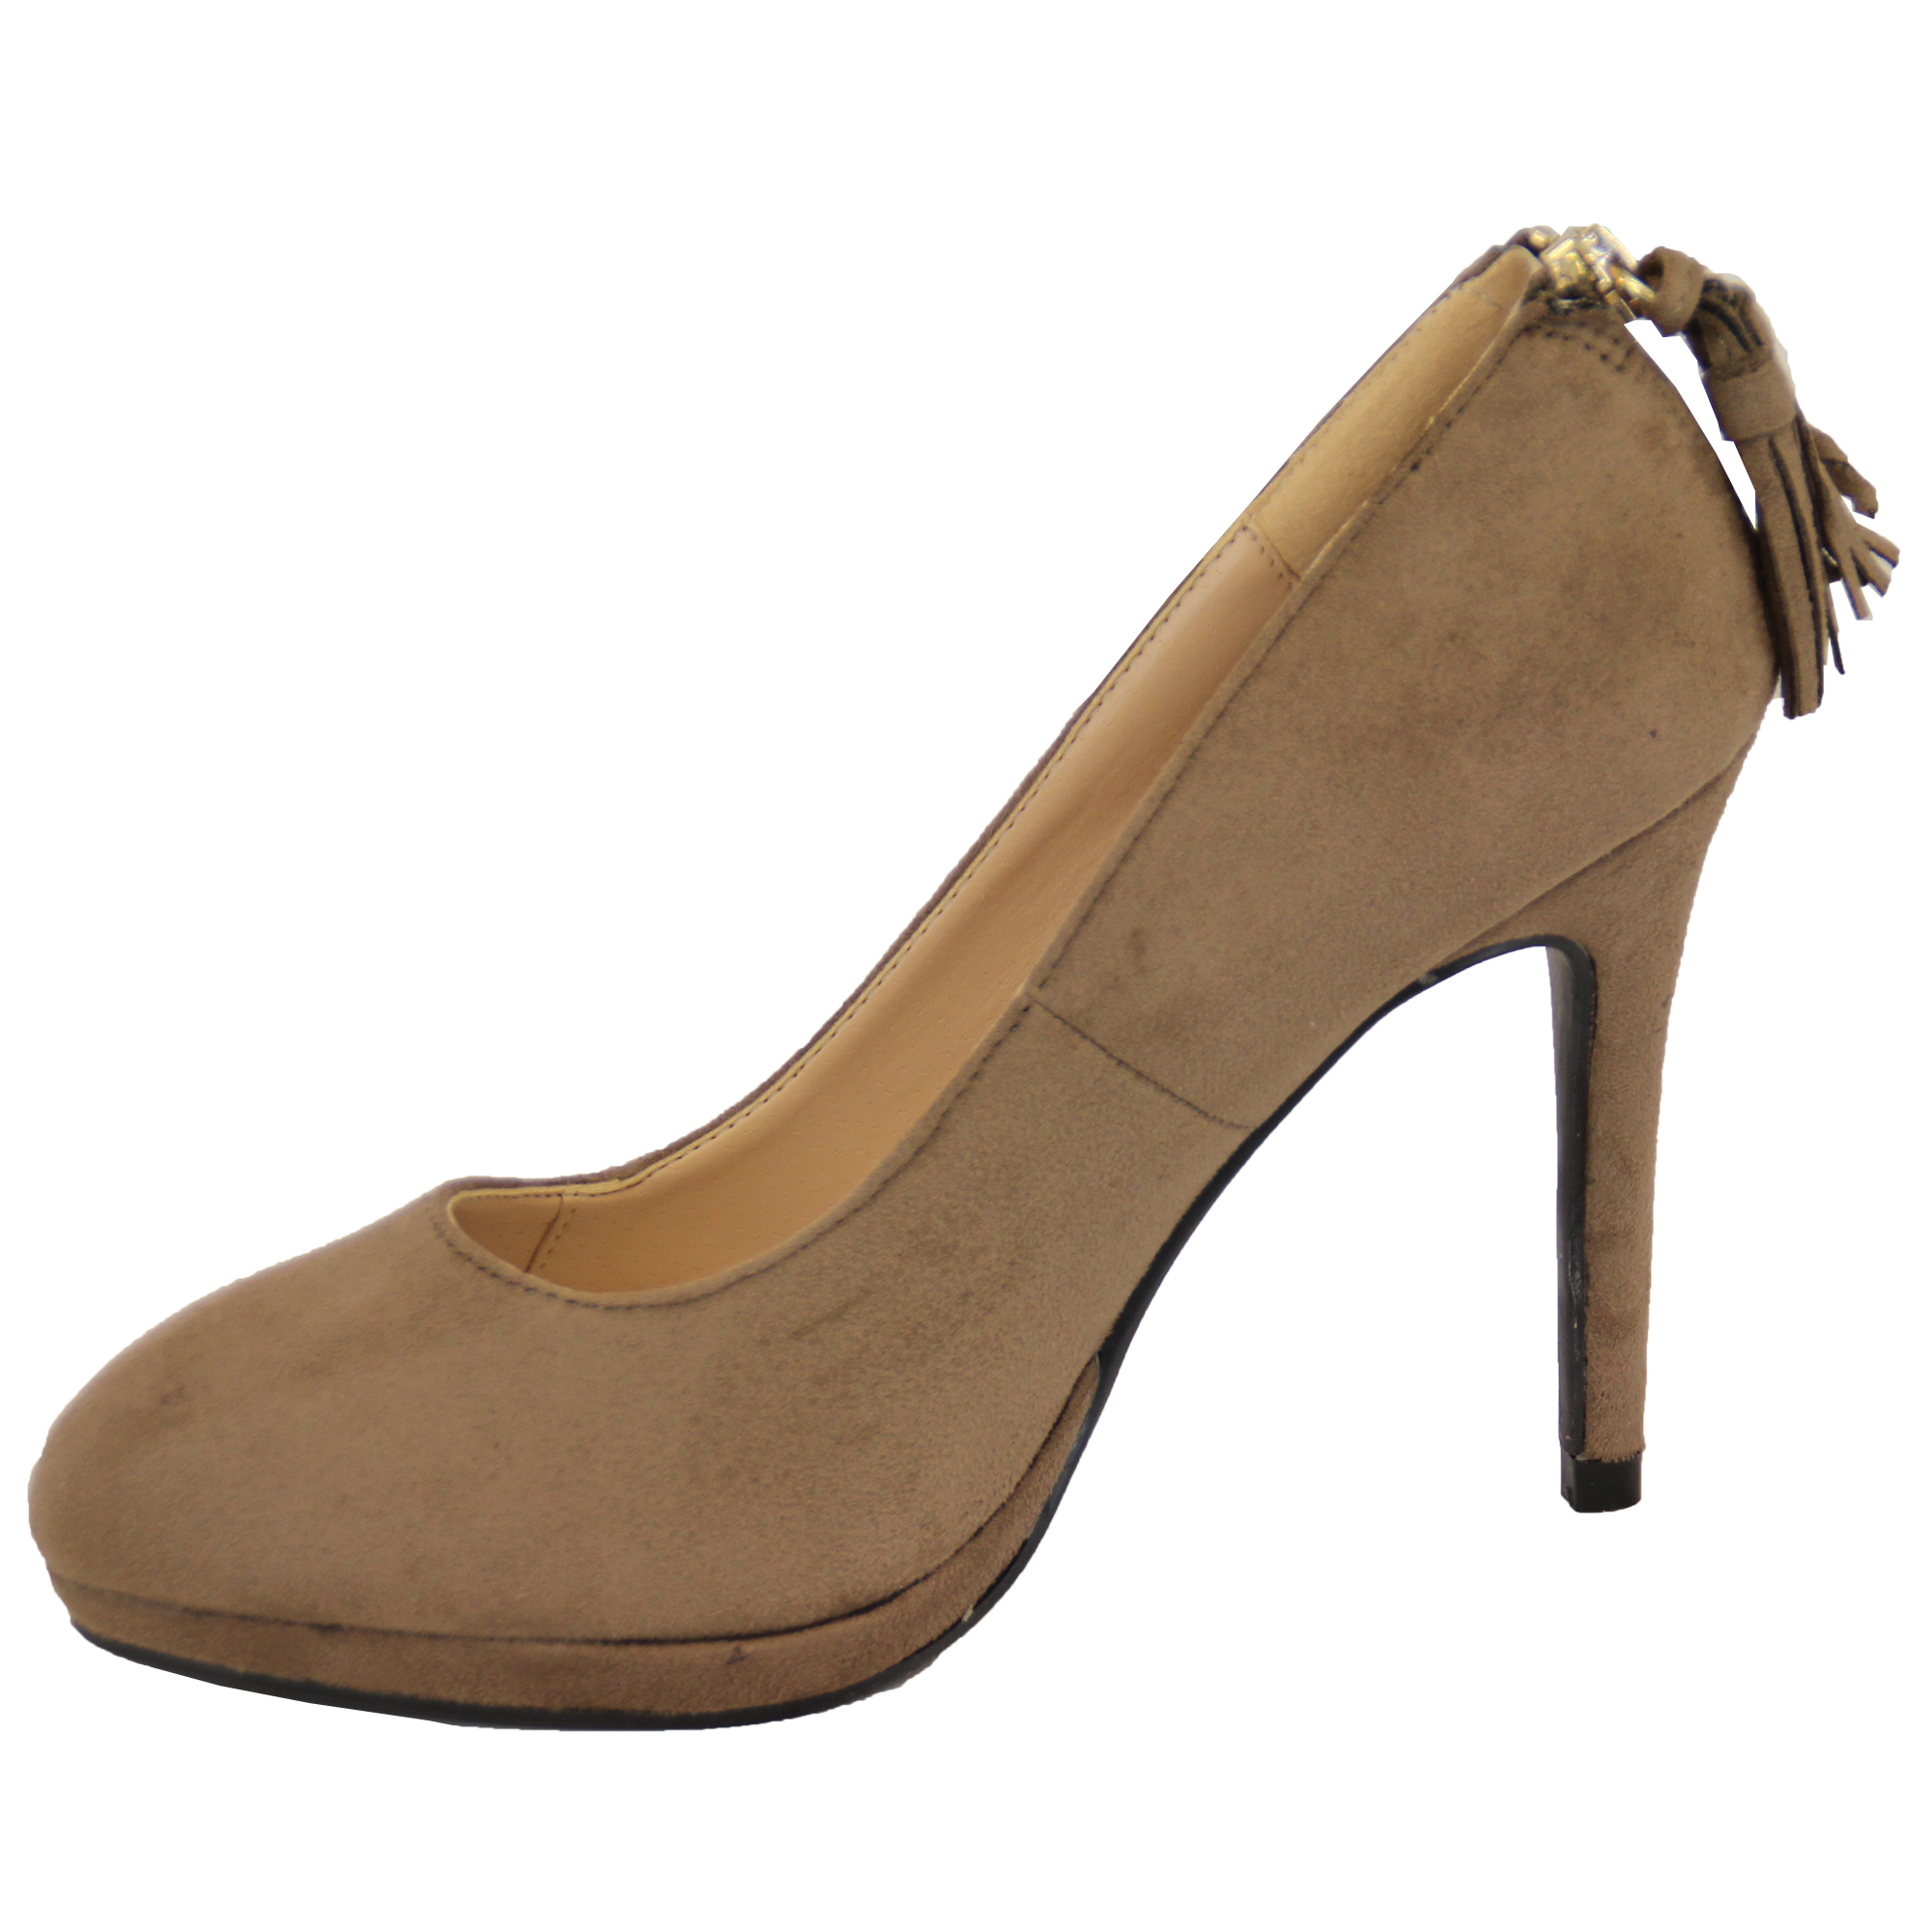 Ladies Suede Look Womens Stiletto Heel Slip On Shoes Wedding Fashion Casual New